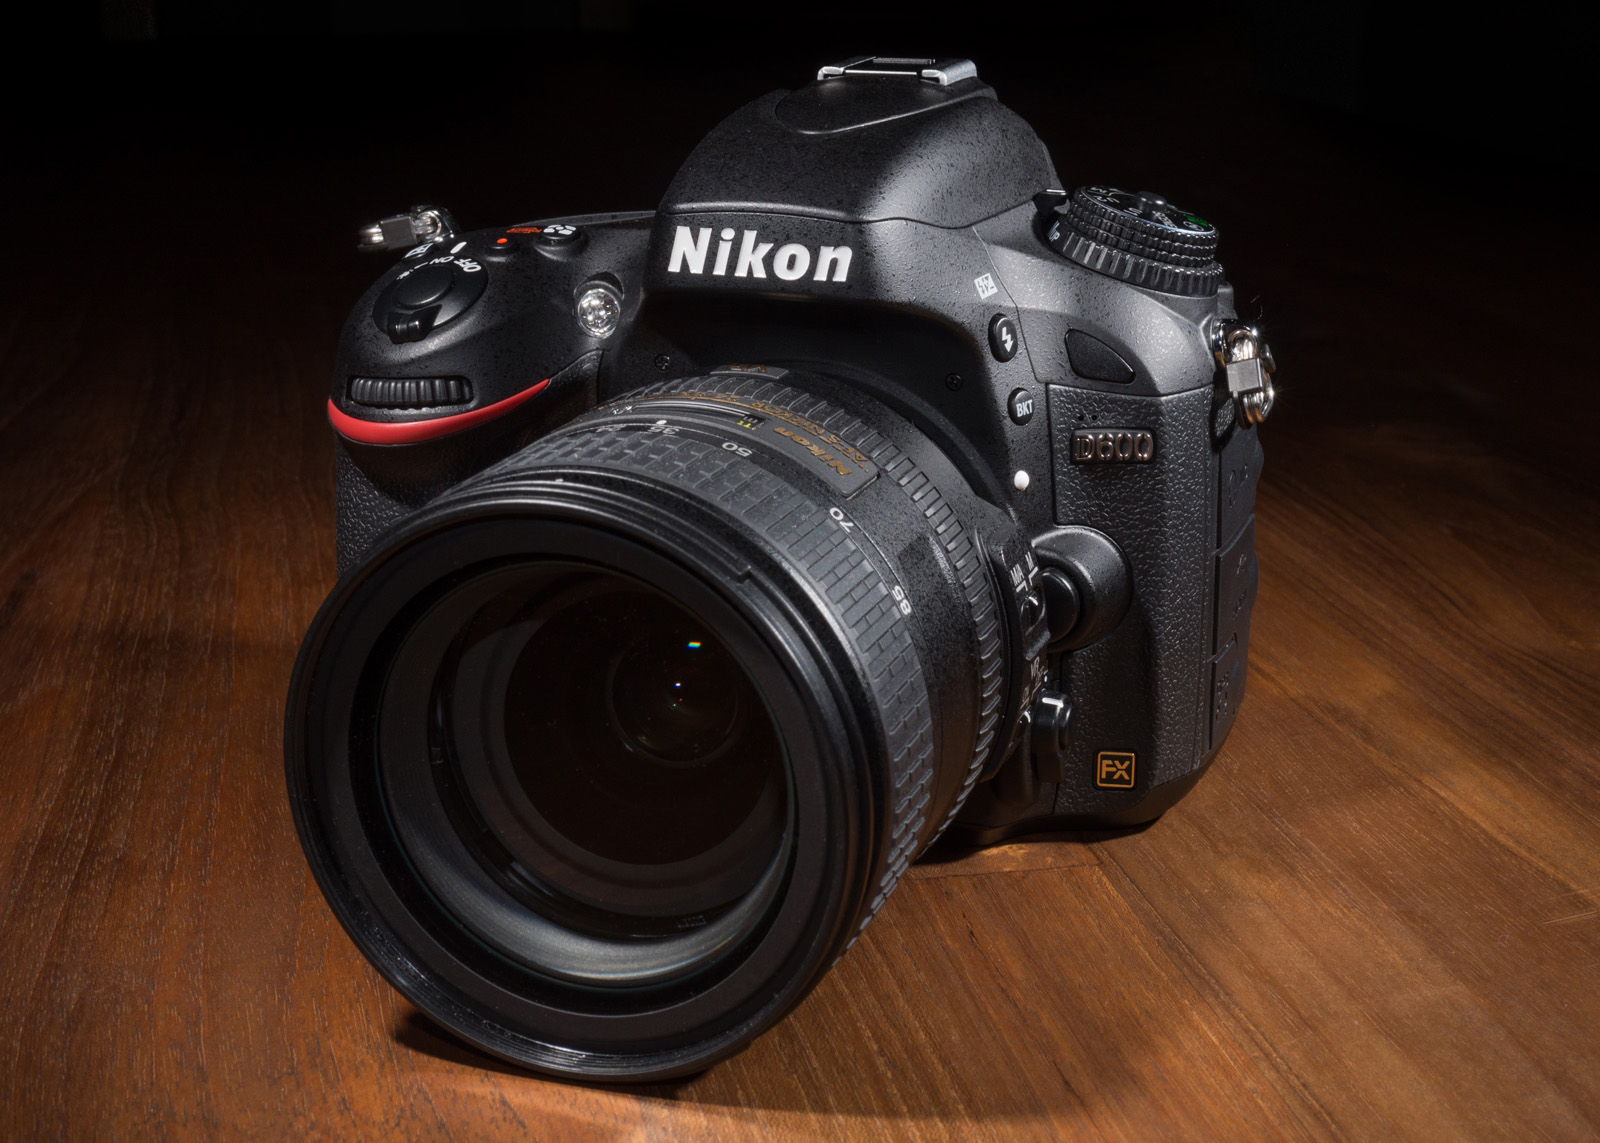 Nikon 600 - Hands on Review - Whats not to like?